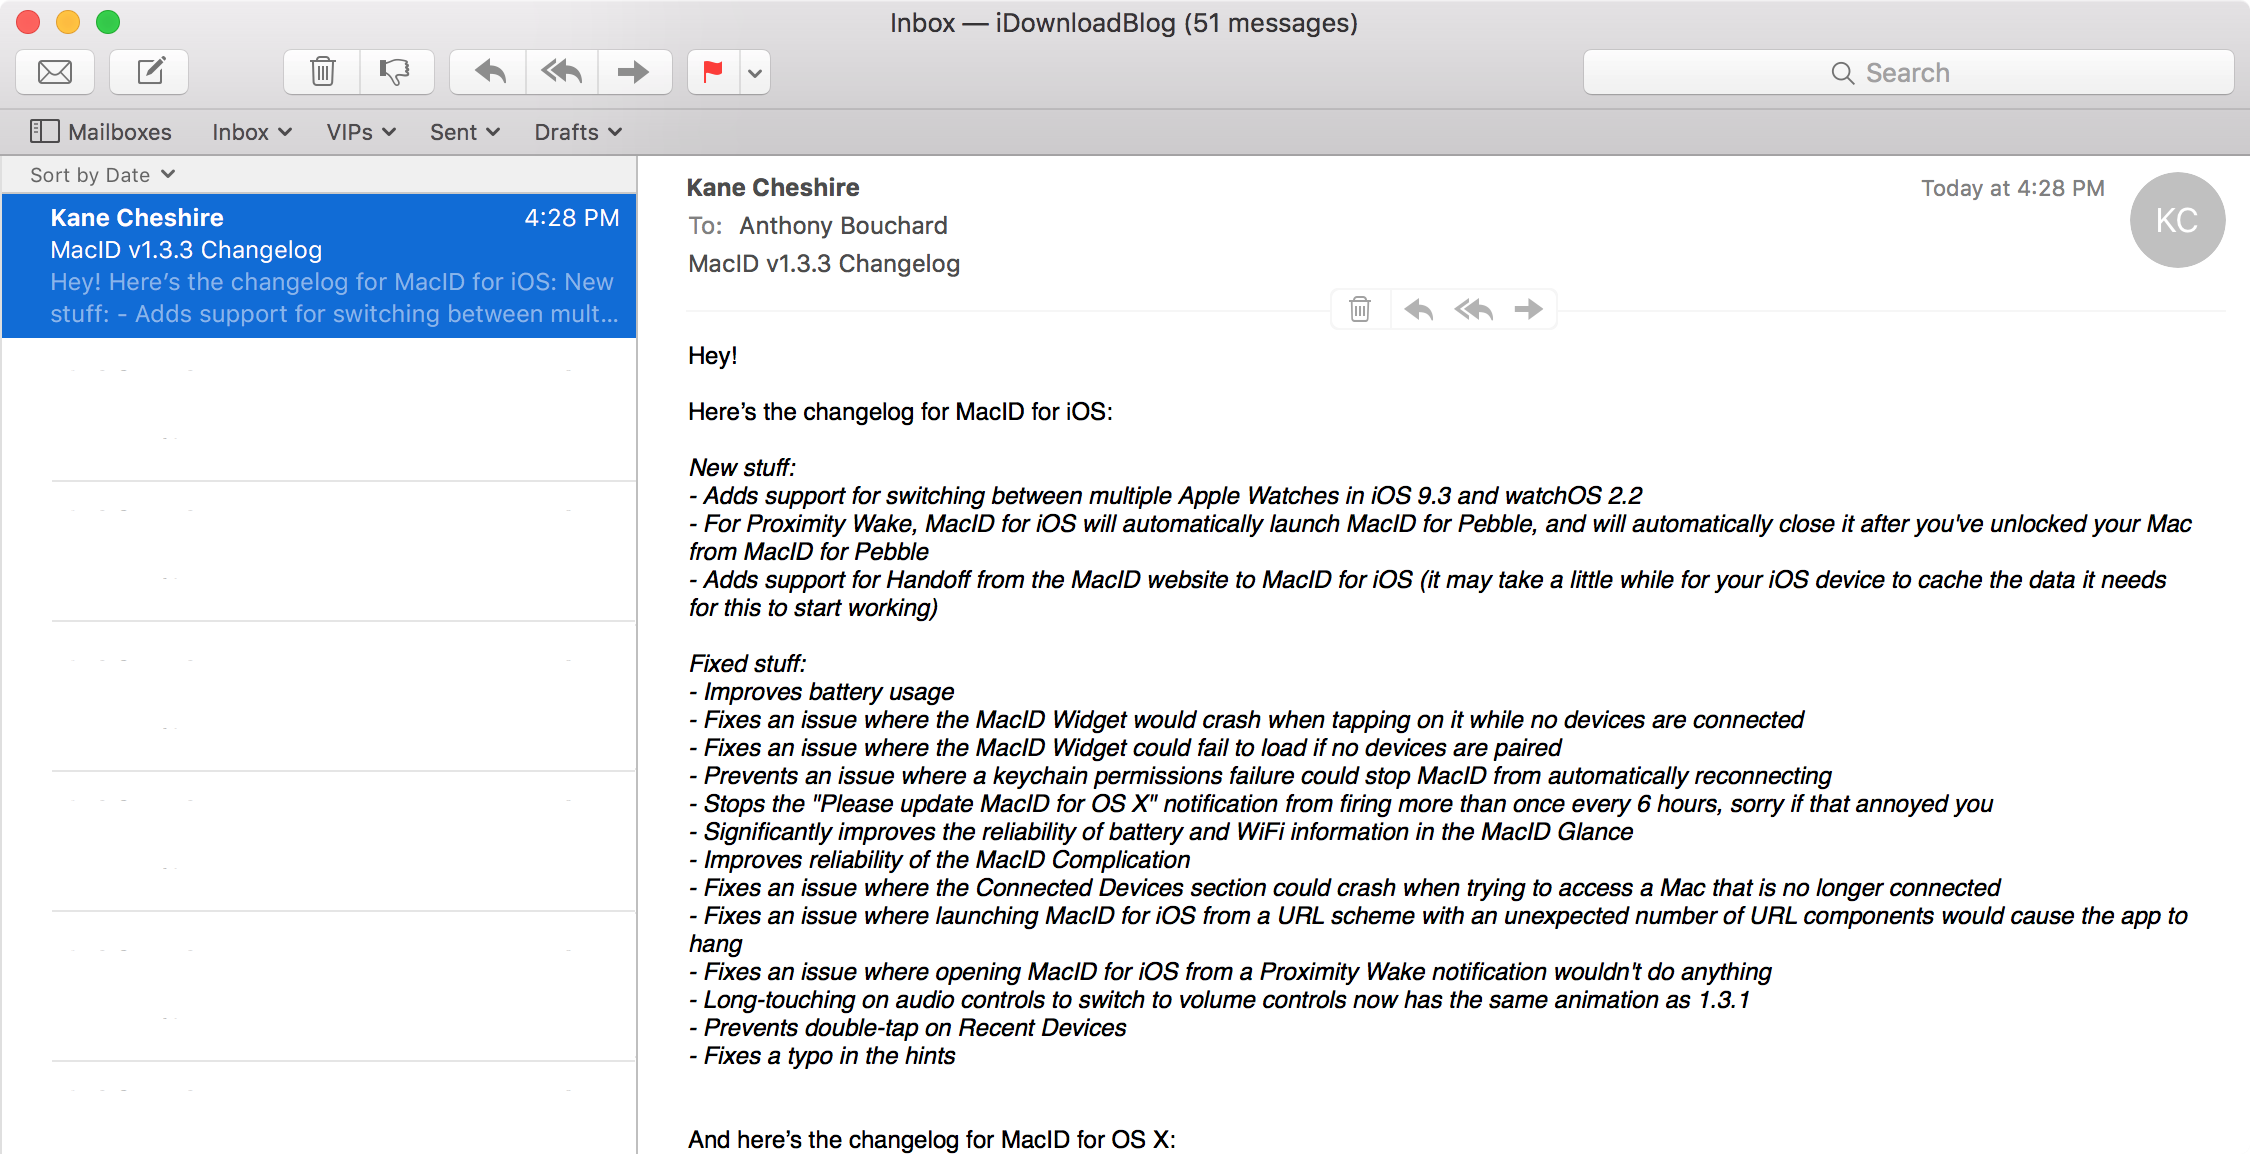 How to turn an email into a reminder on Mac